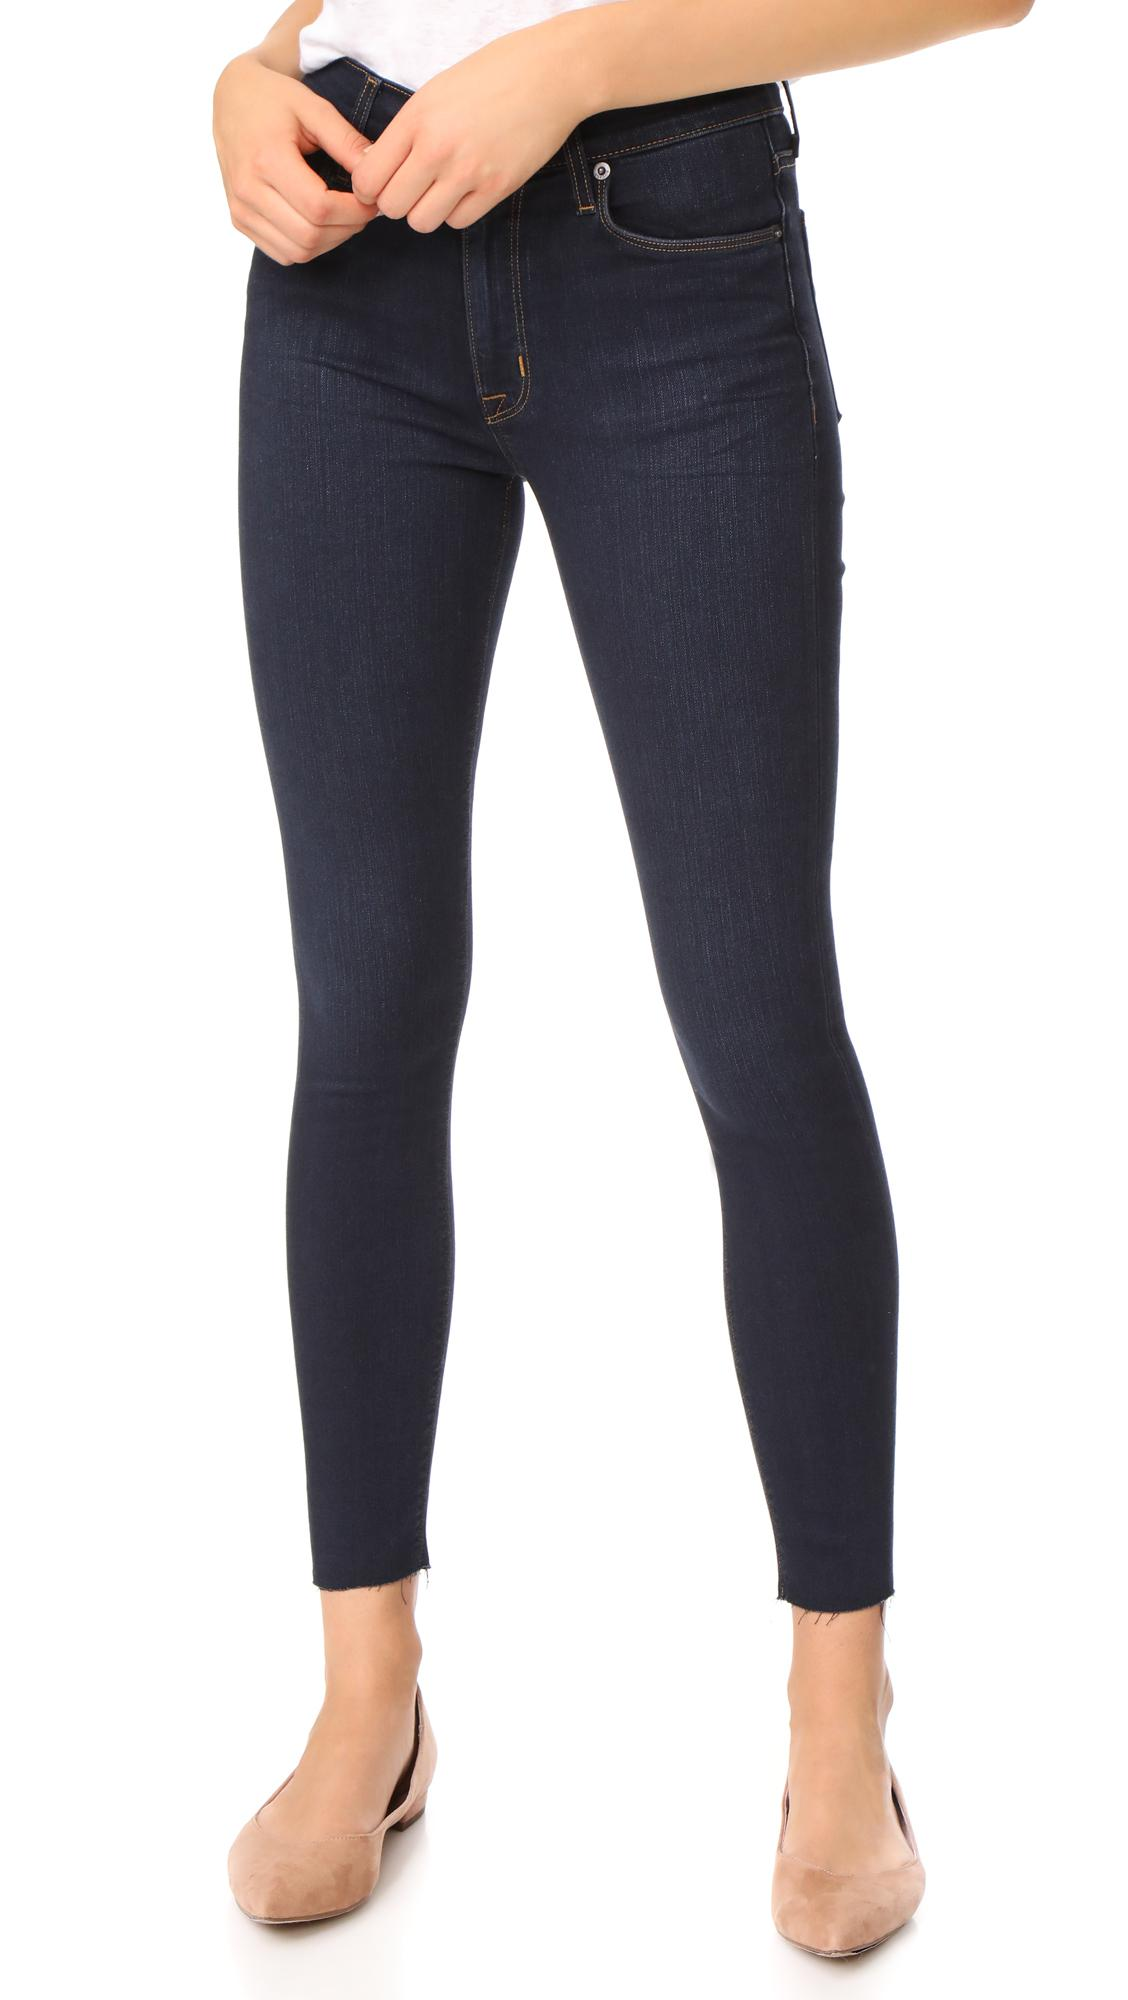 67371a68c97 Lyst - Hudson Jeans Barbara High Waist Super Skinny Jeans With Raw ...